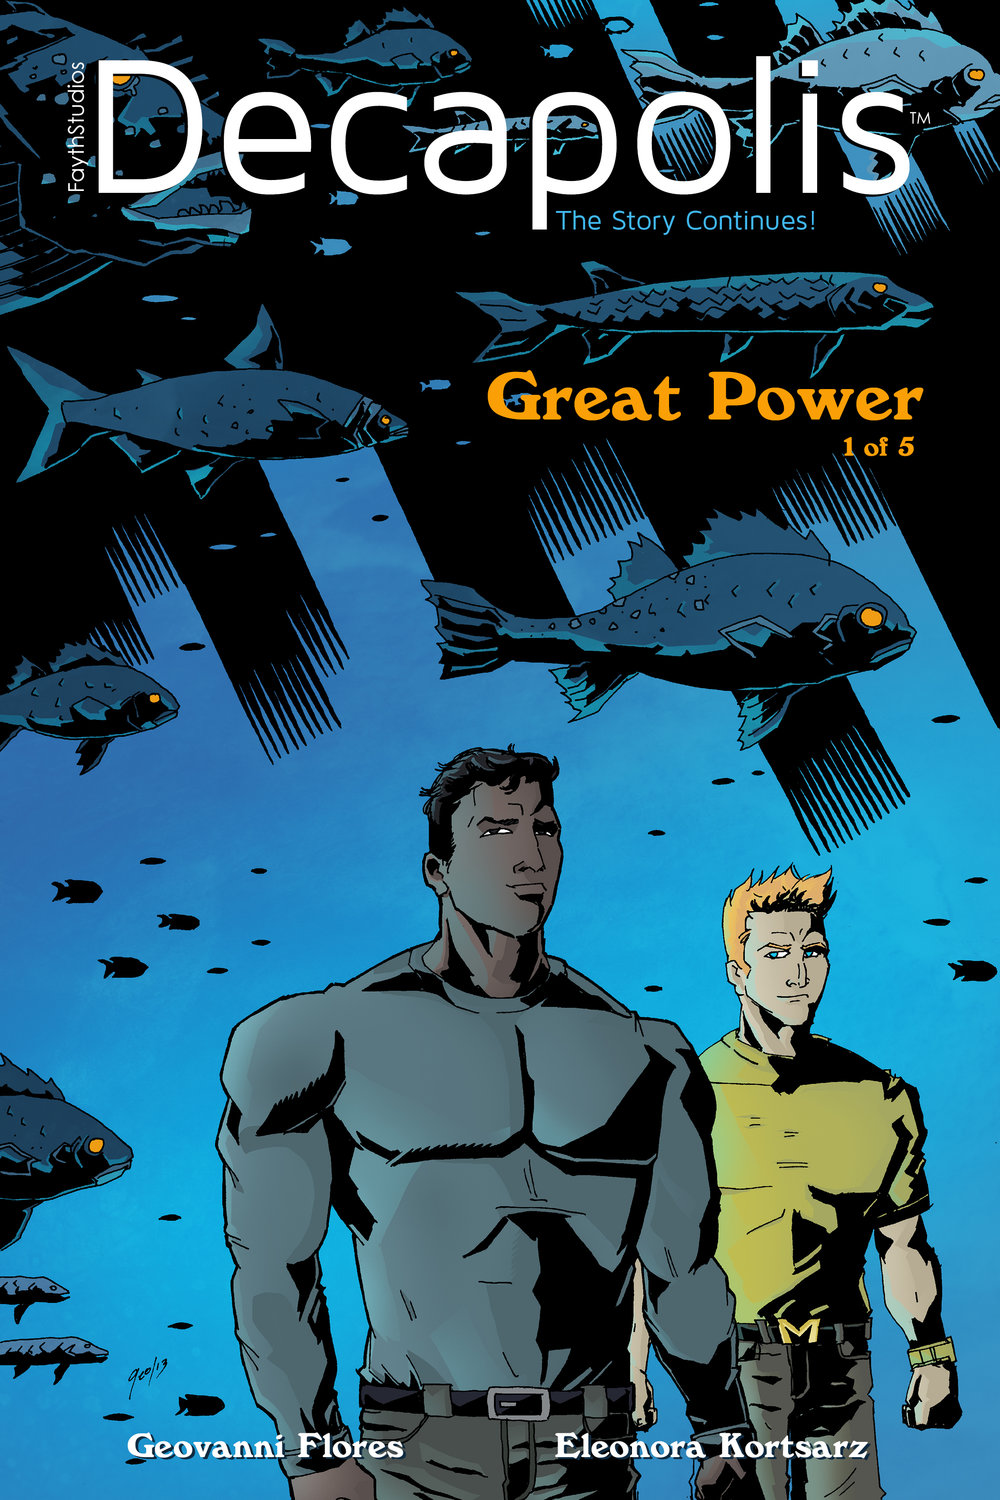 Great Power 1 Page 00-125.jpg